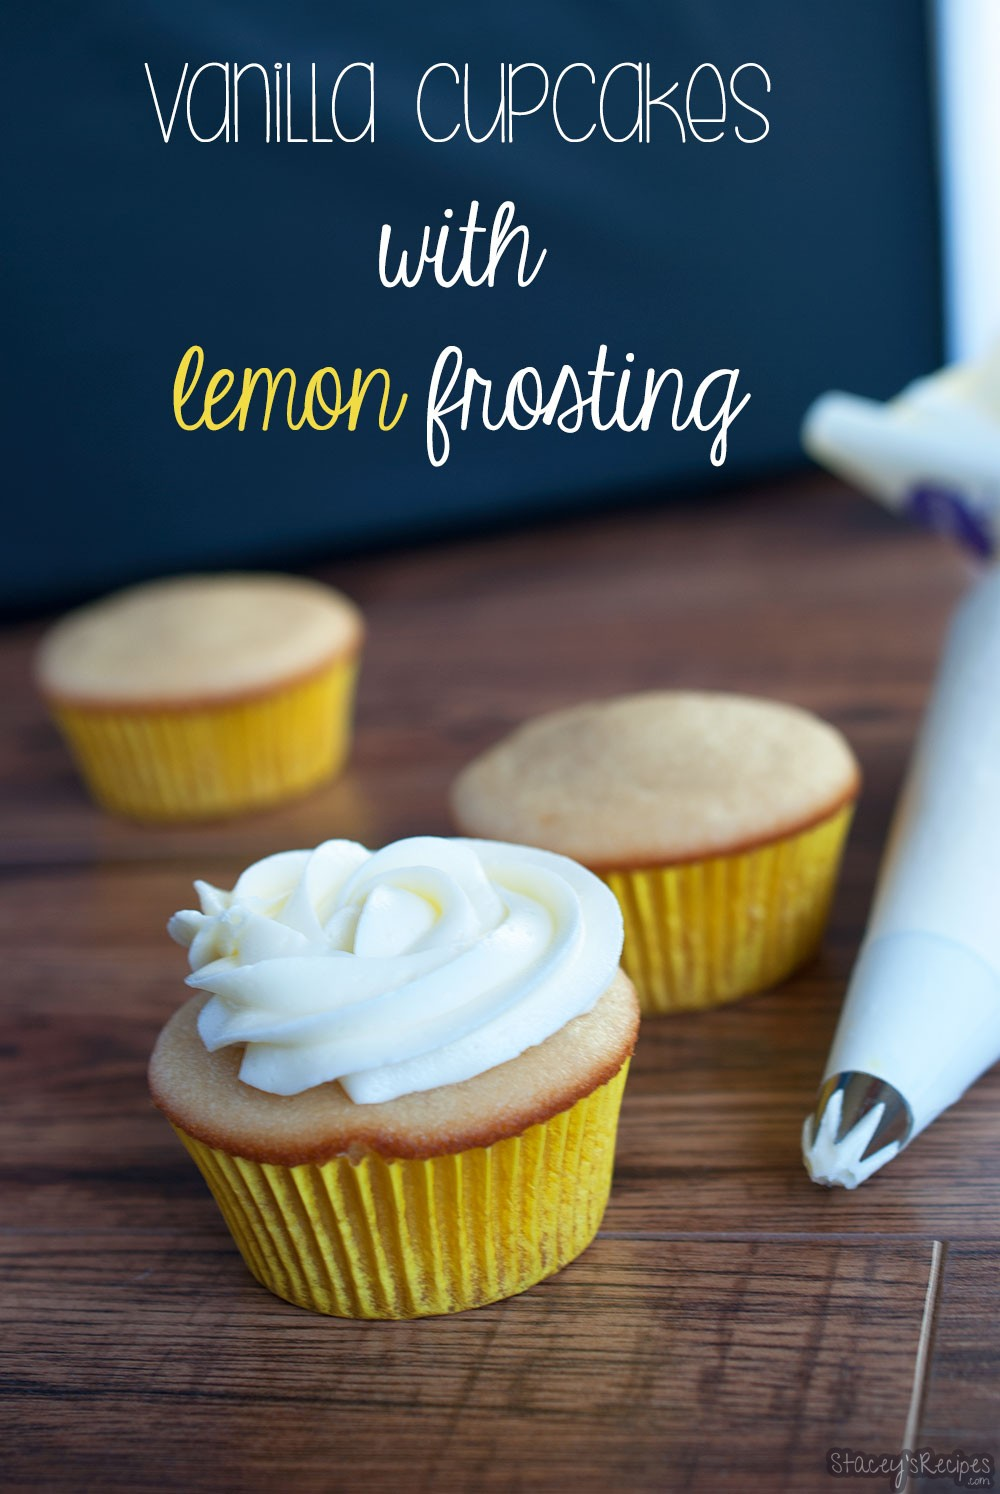 Vanilla Cupcakes with Lemon Frosting